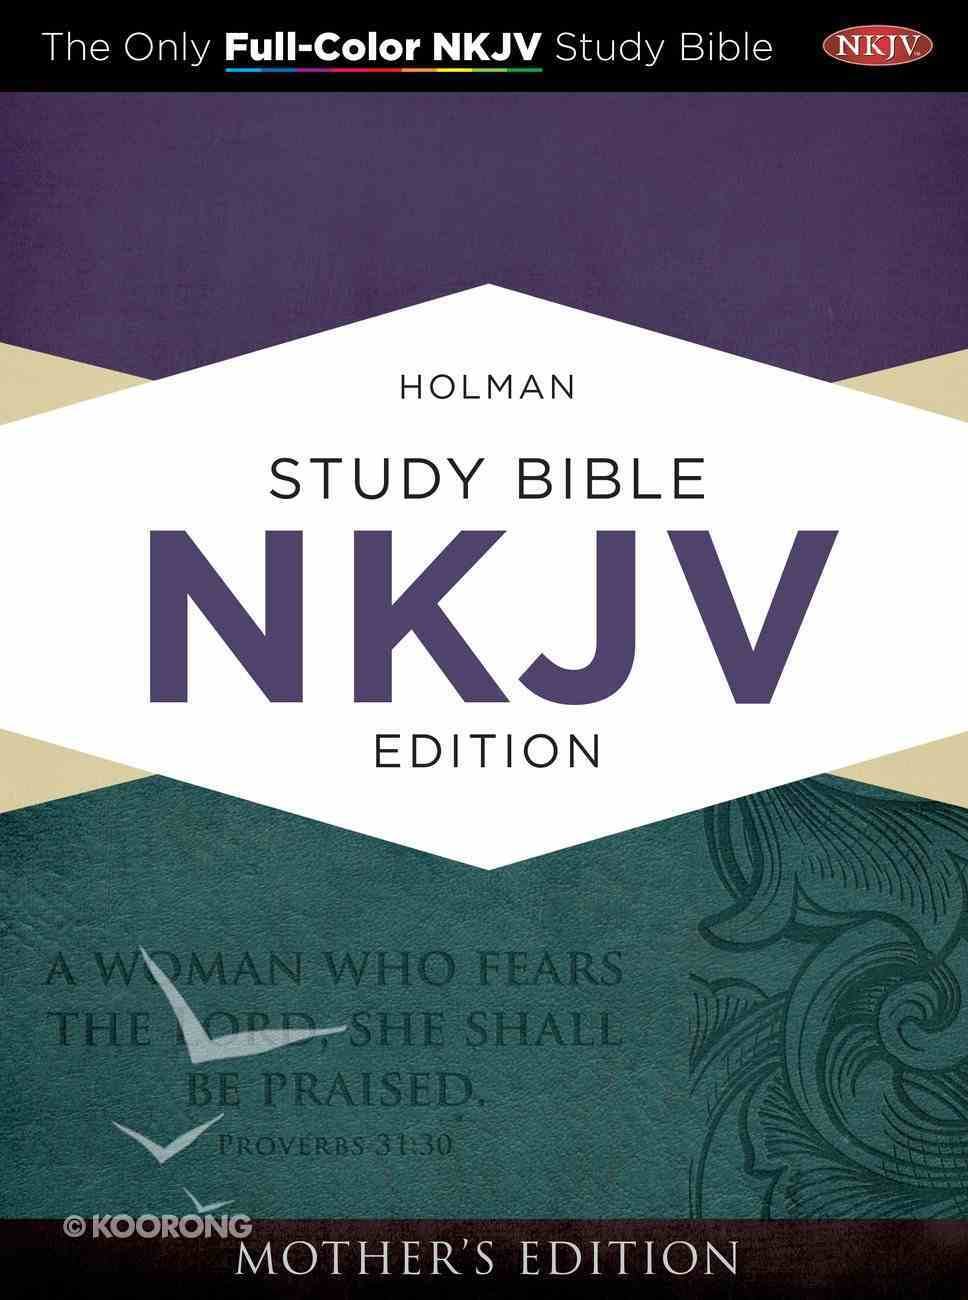 NKJV Holman Study Bible Mother's Edition Turquoise Imitation Leather